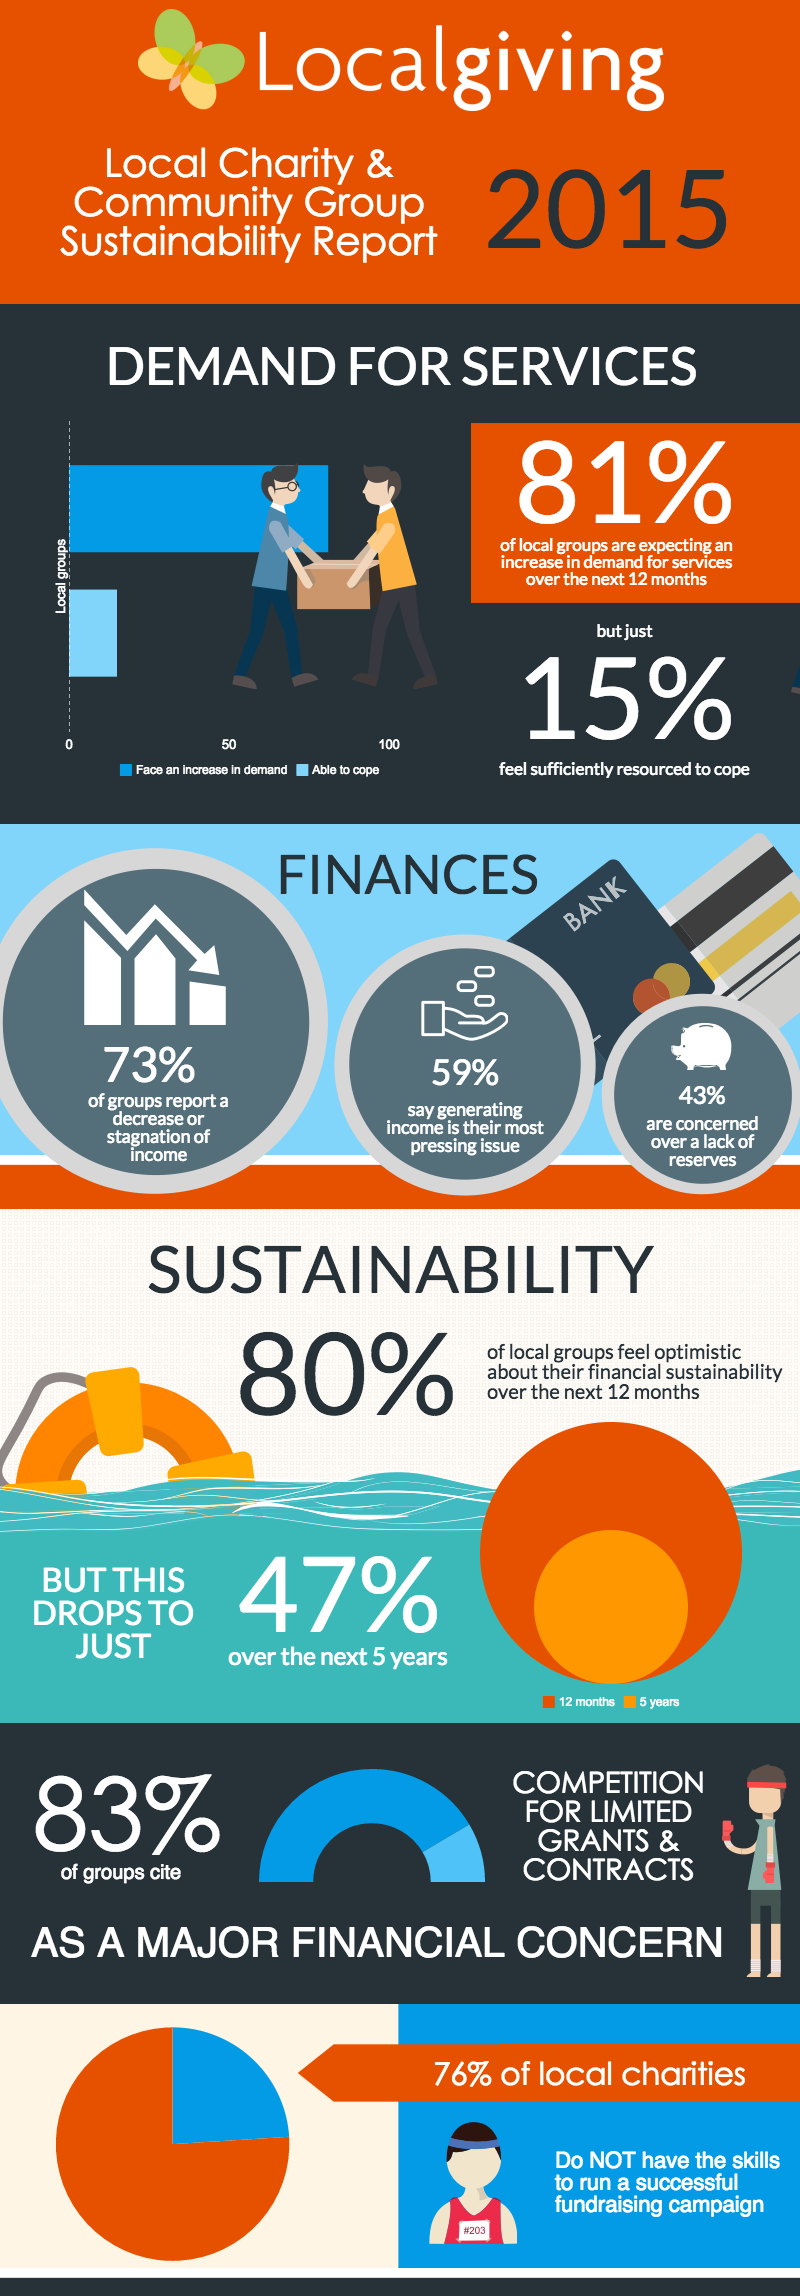 Local Charity & Community Group Sustainability Report 2015 Infographic